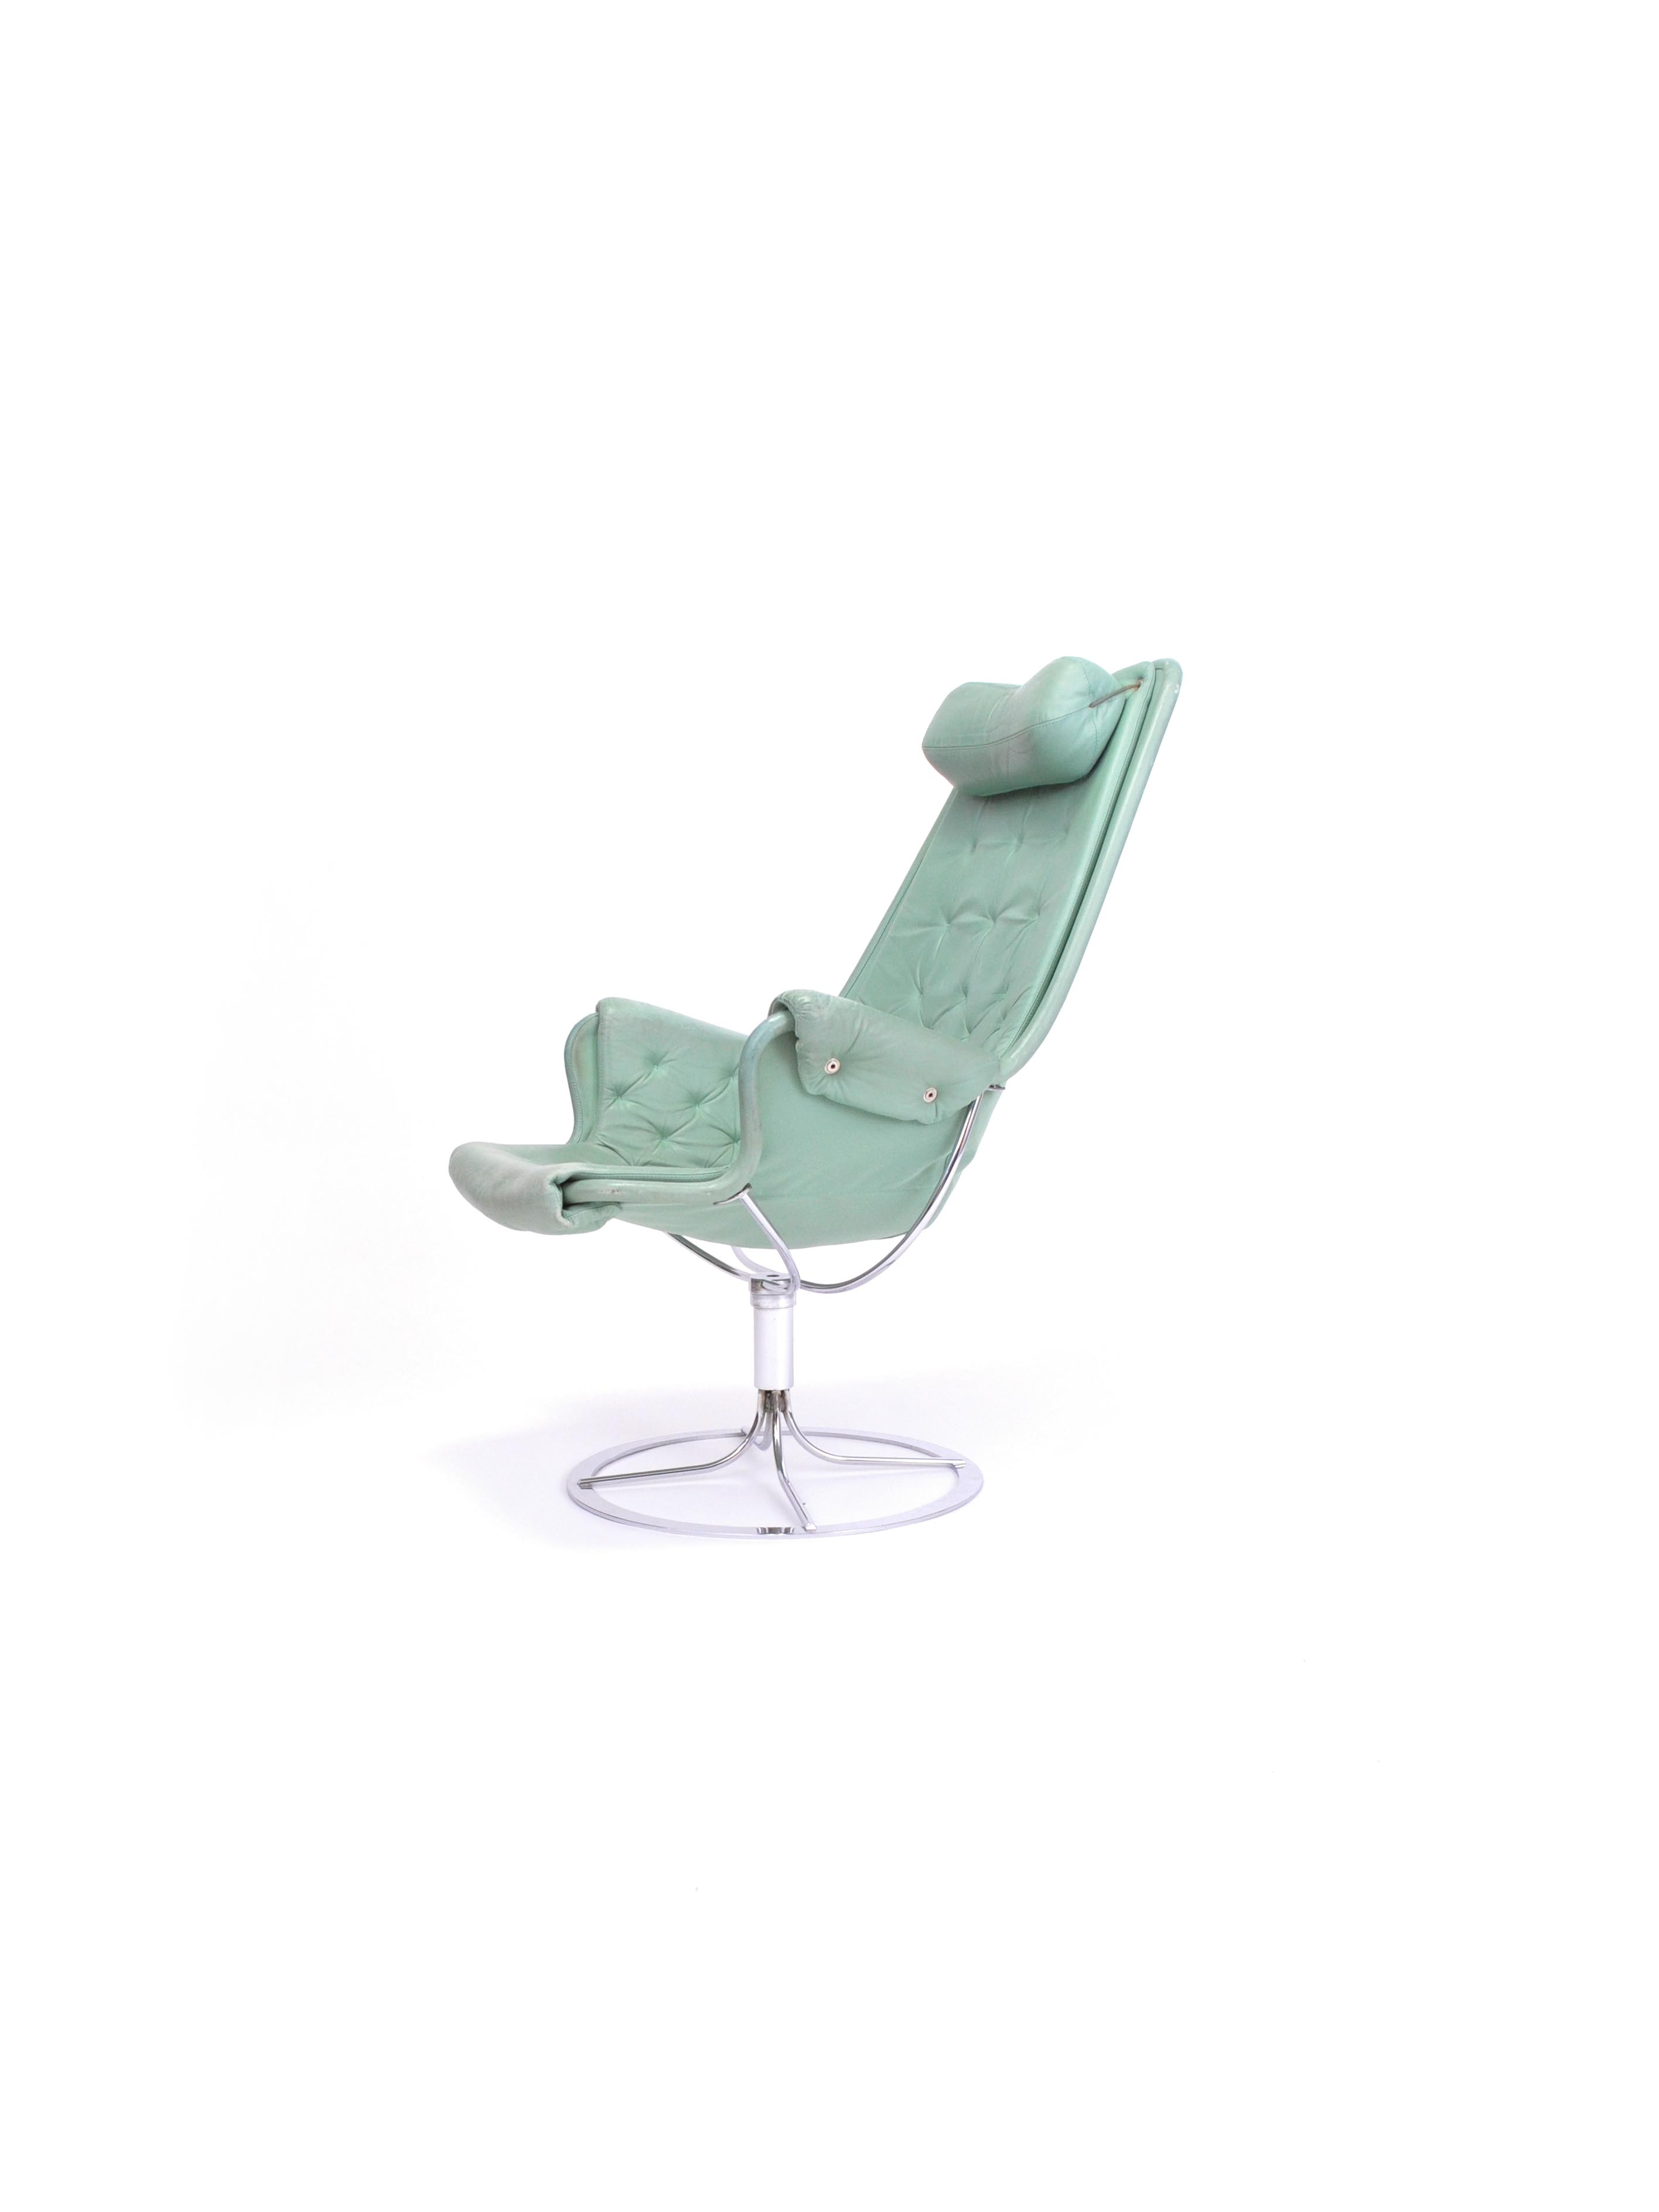 BRUNO MATHSSON JETSON EASY CHAIR